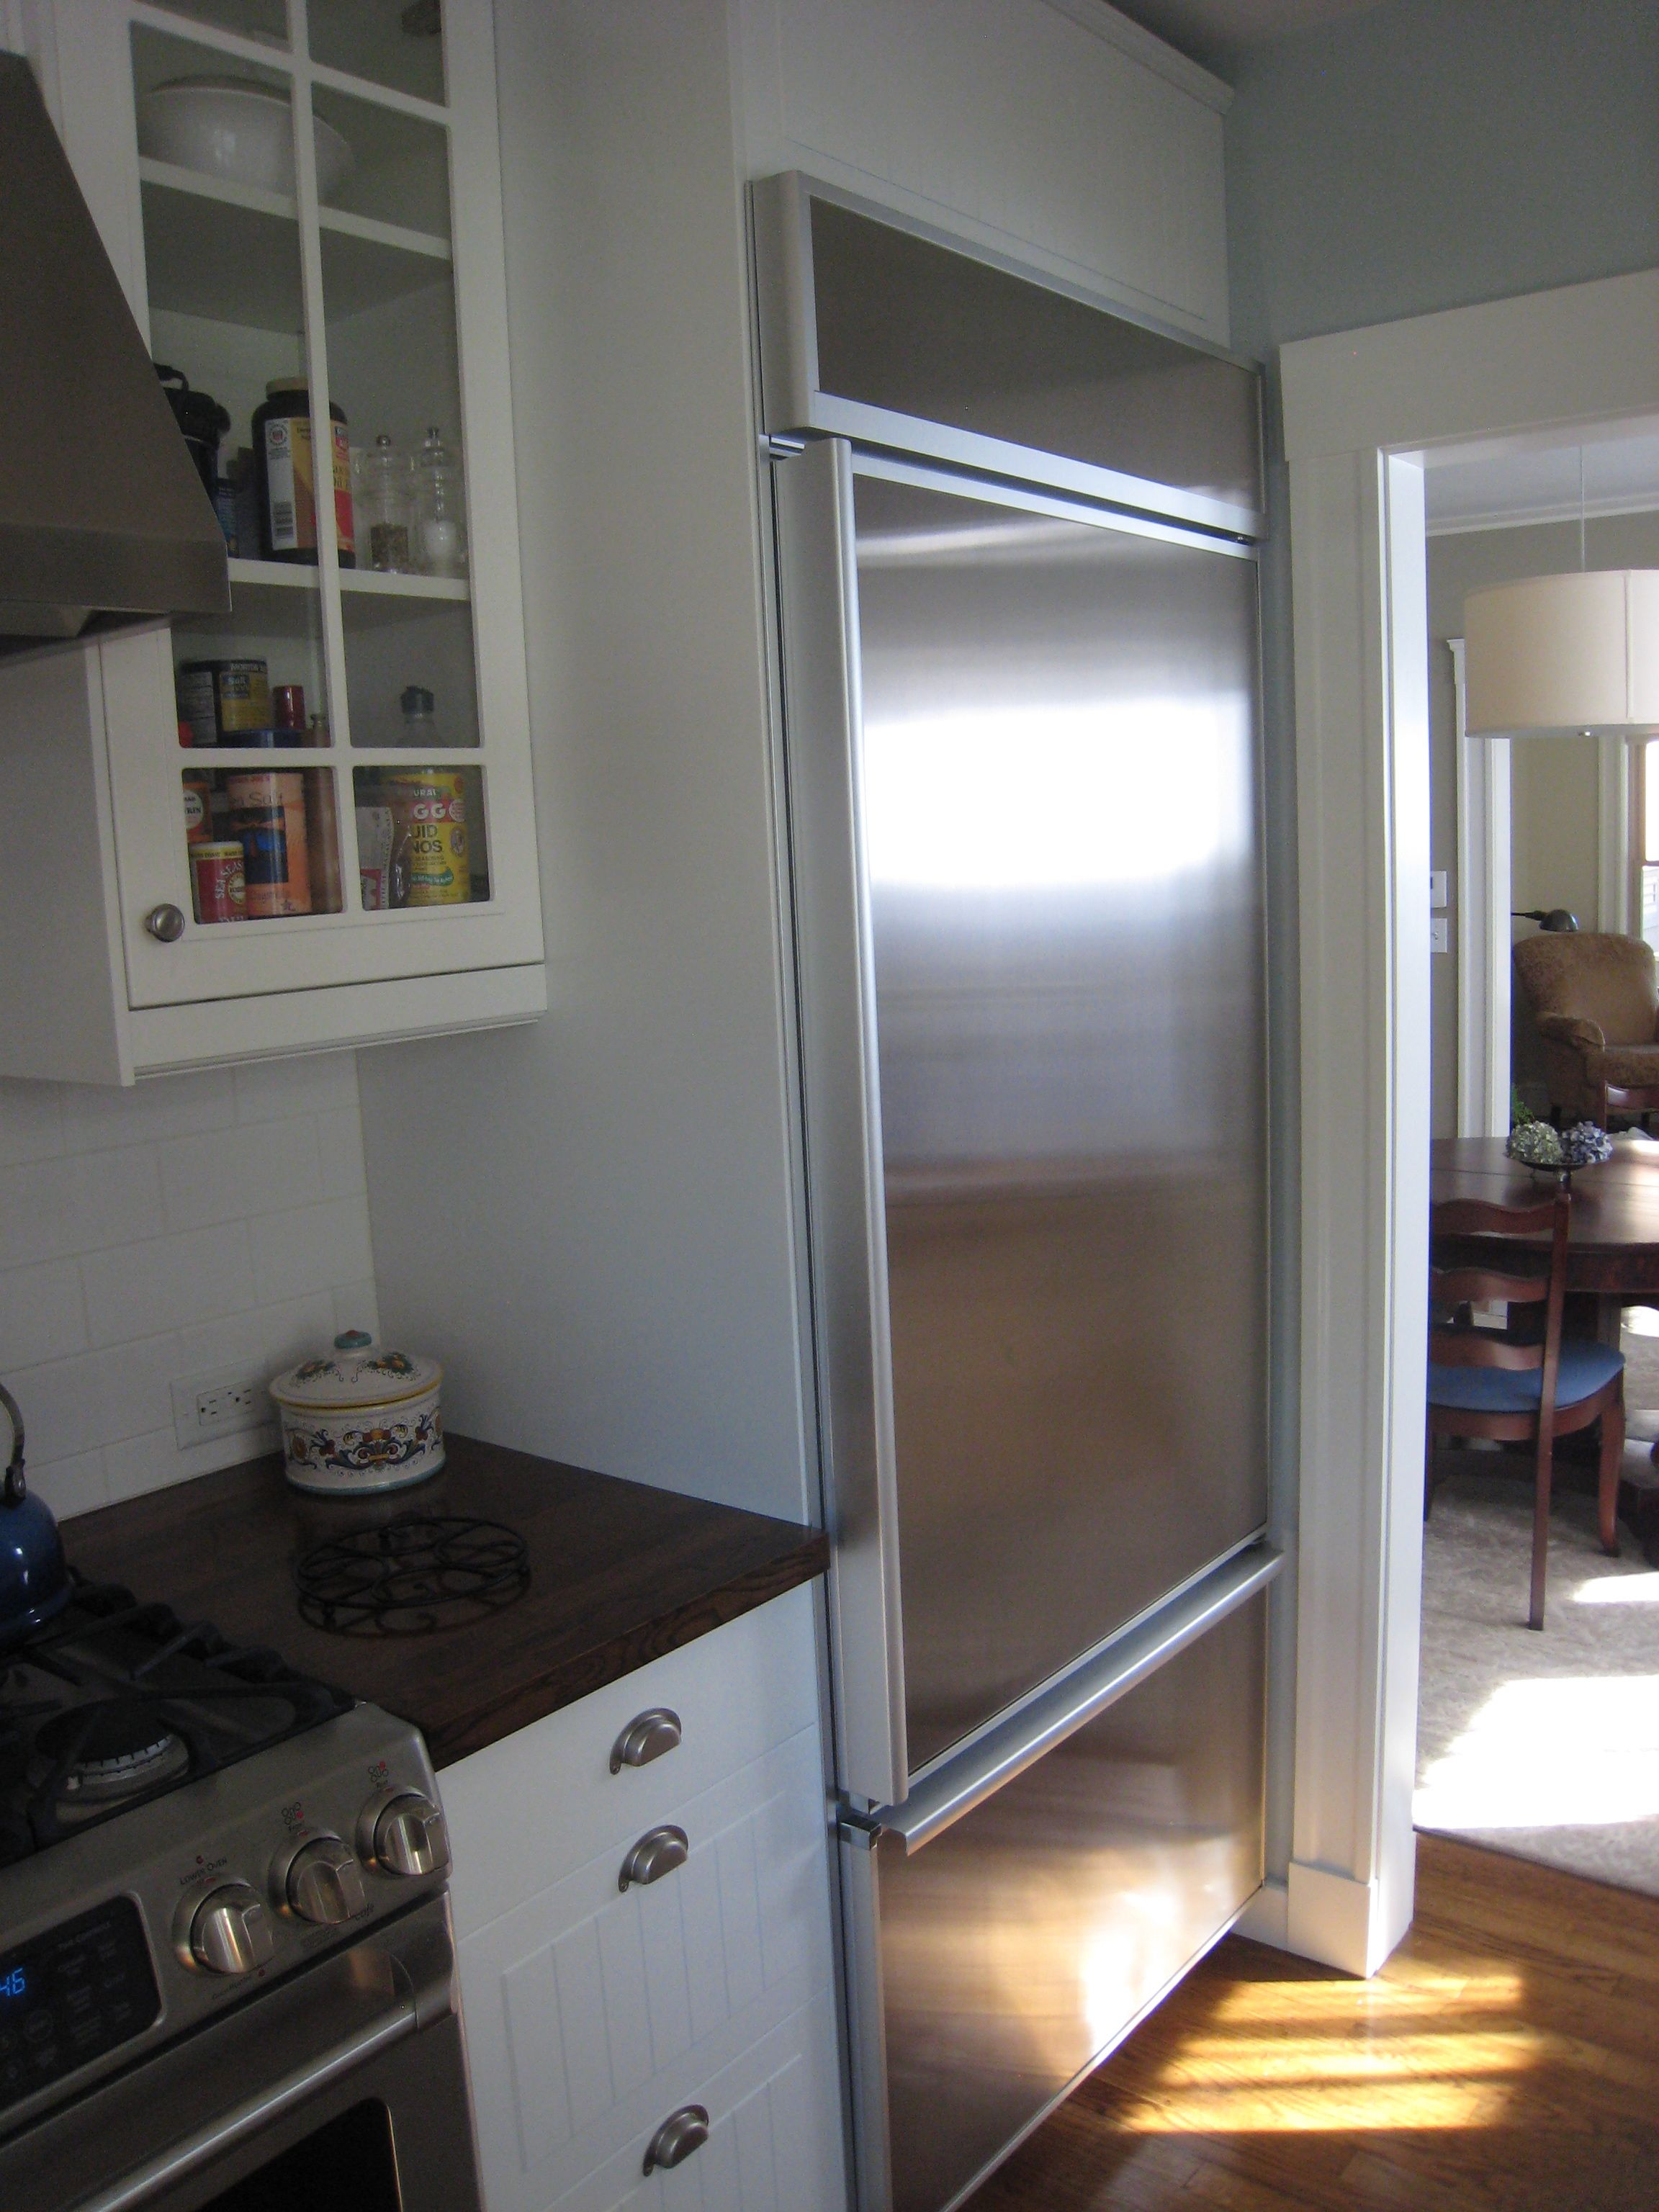 ... Kitchenaid Built In Refrigerator 42 Inch Panel Ready Refrigerator  Kitchen Traditional First Floor Condo Whitney Condos ...